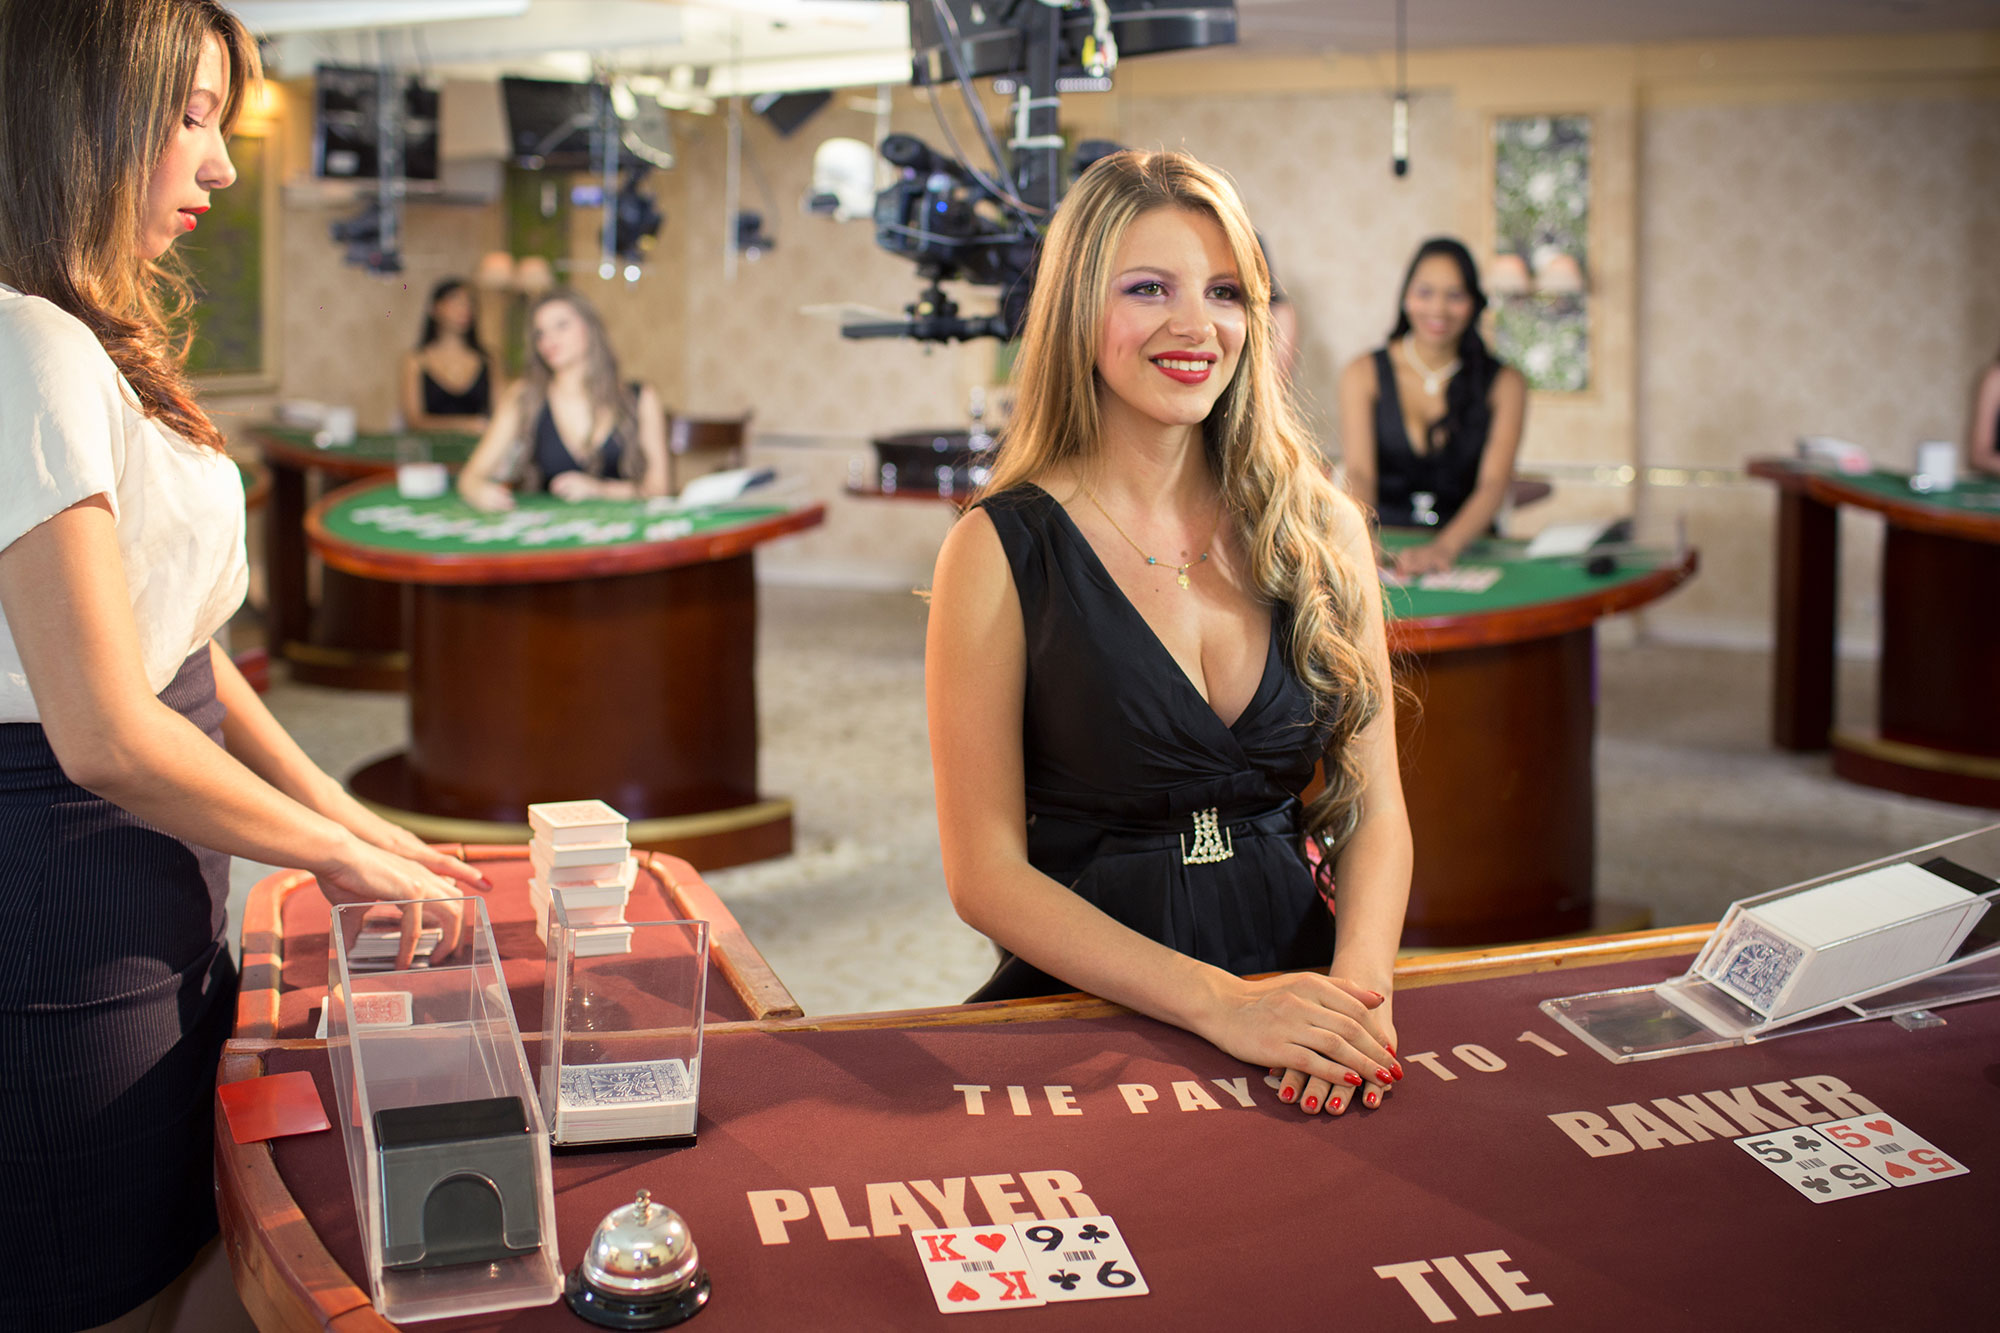 Provide your valuable feedback if you are satisfied with the gaming services in online casinos